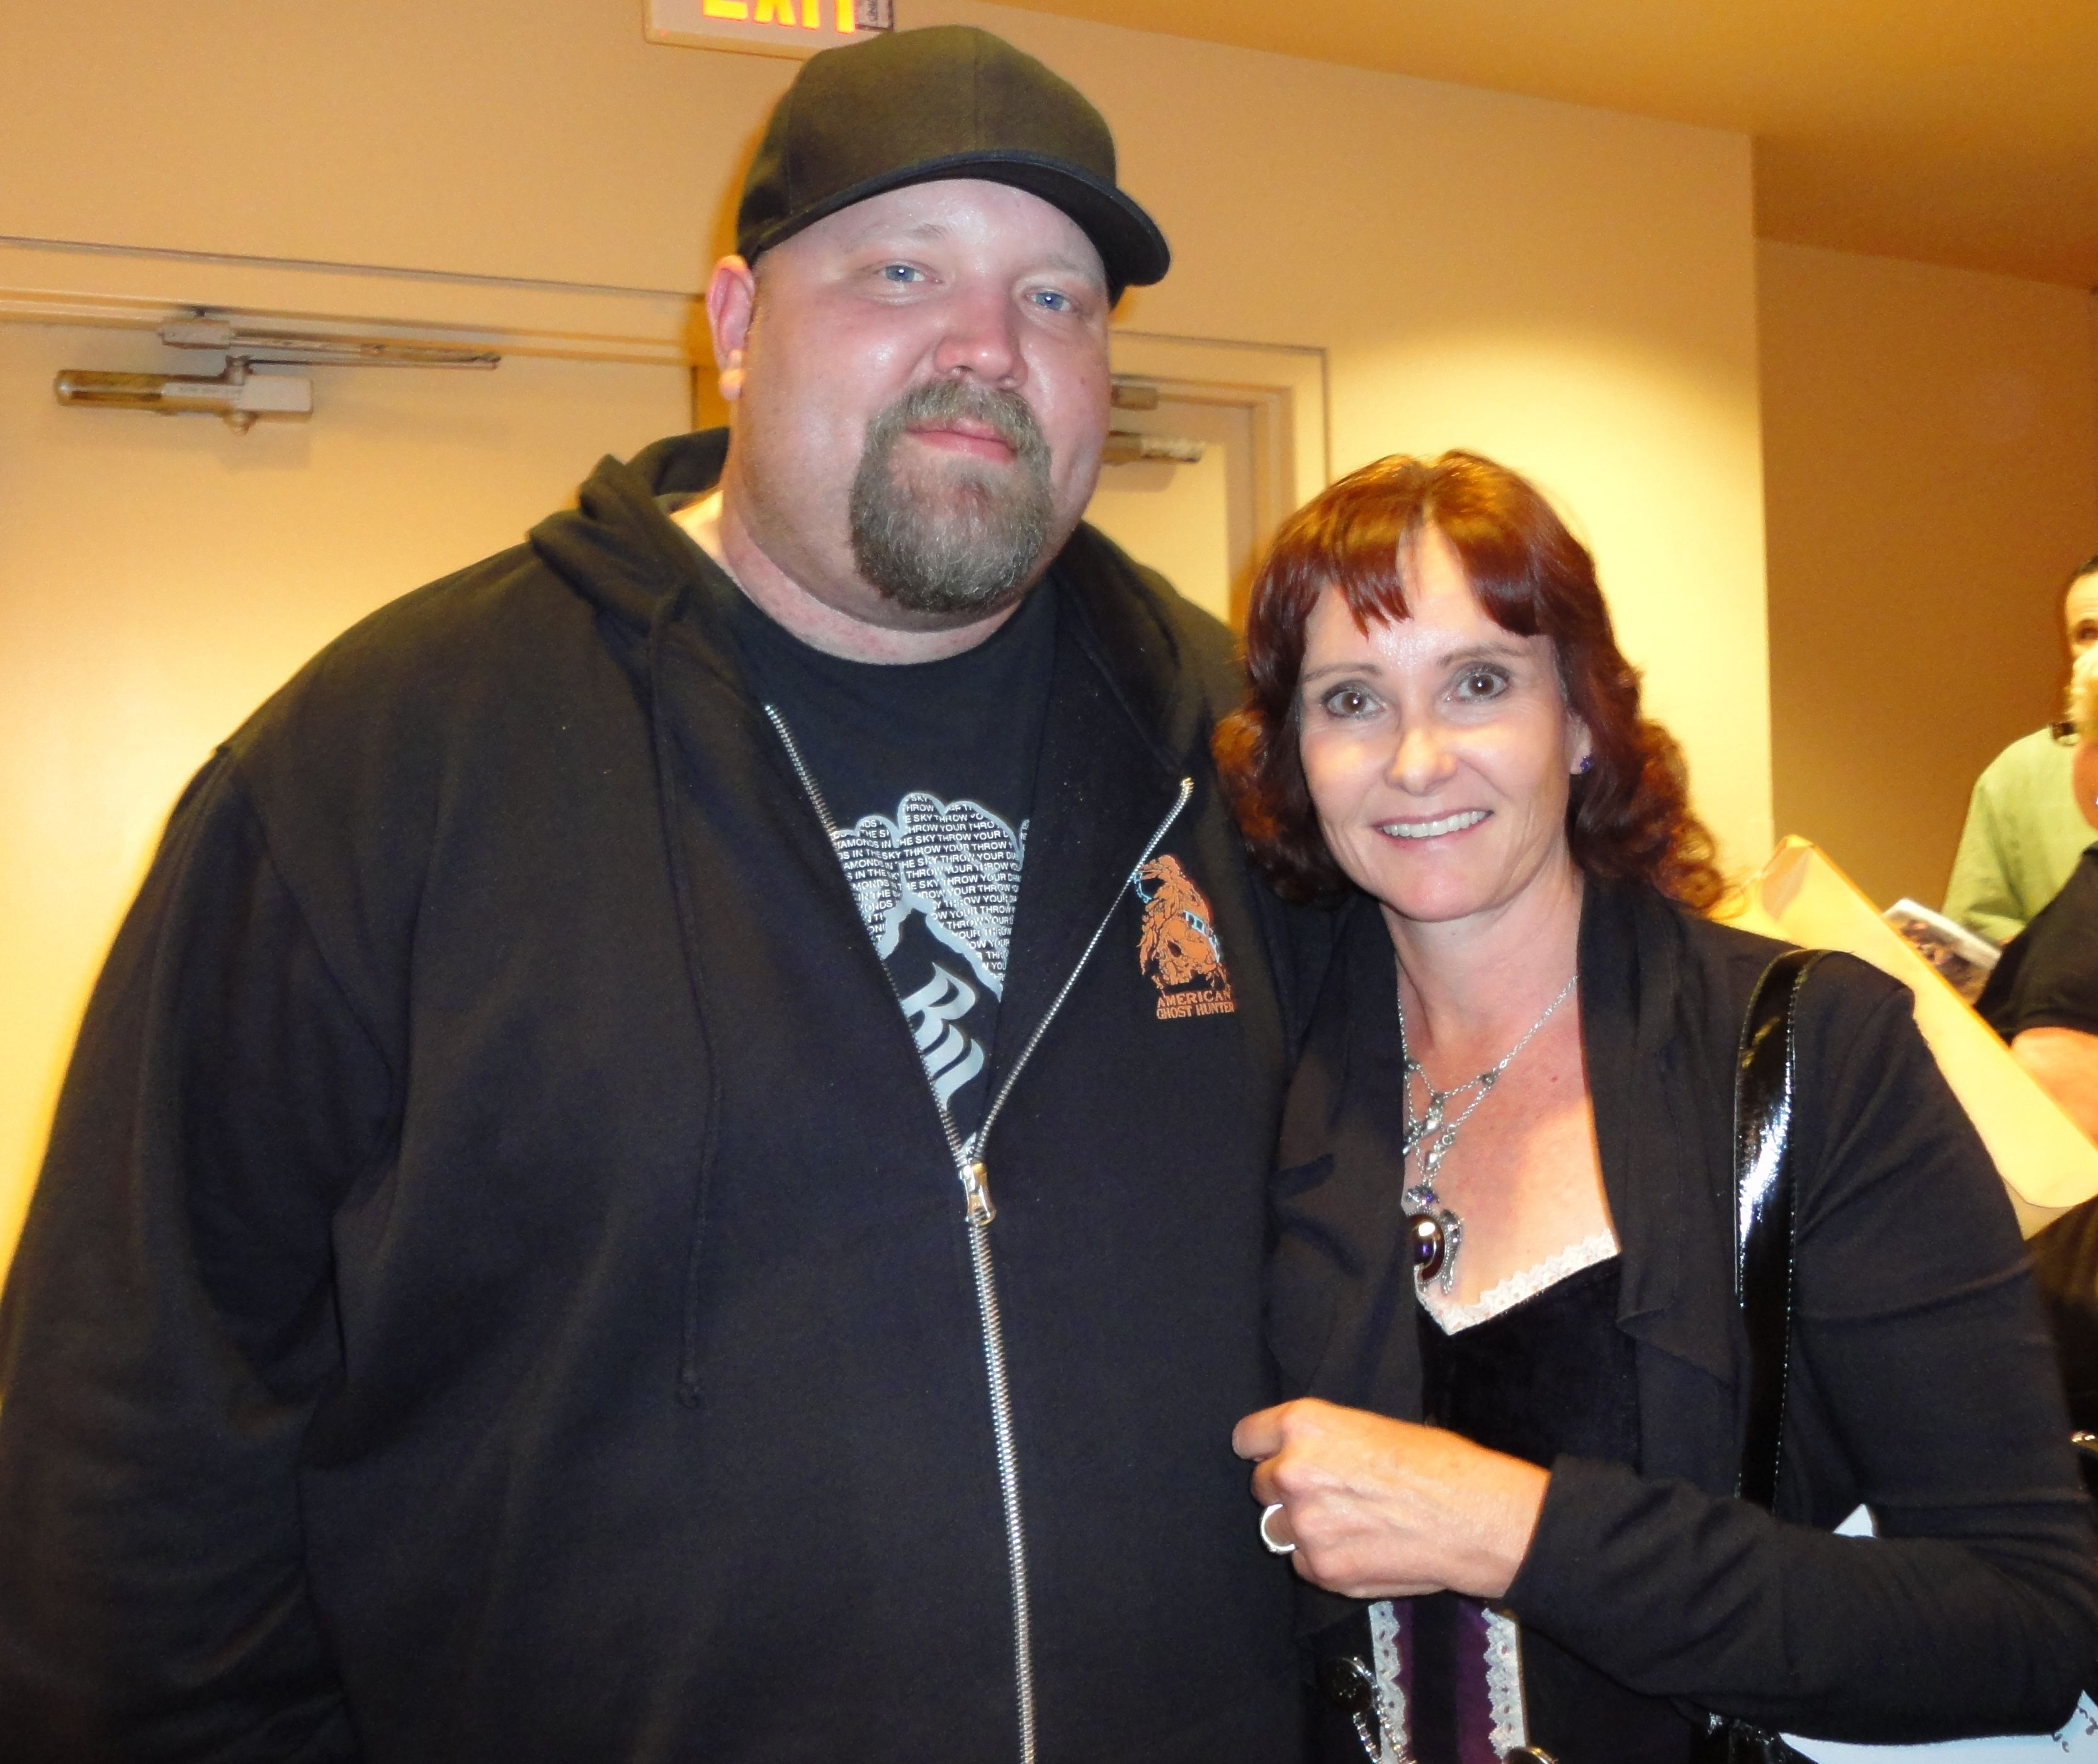 Me with Chad Calek - Paranormal State & American Ghost